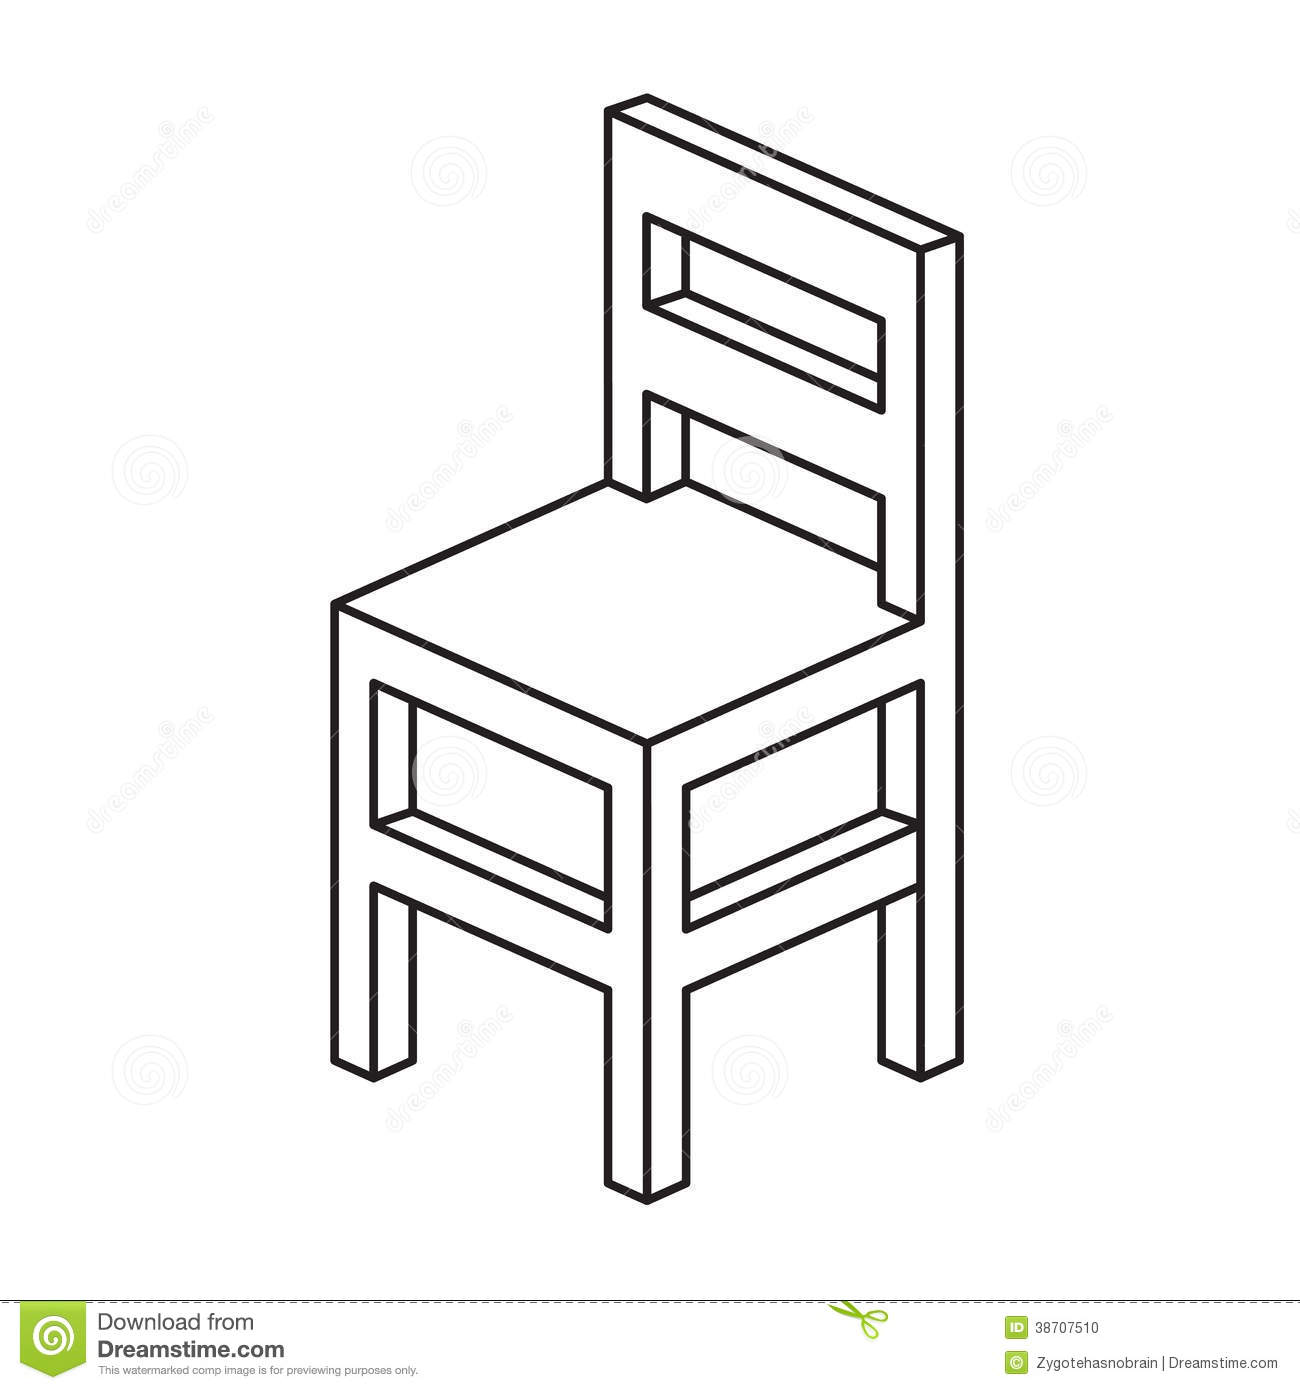 Chairs clipart black and white 5 » Clipart Station.